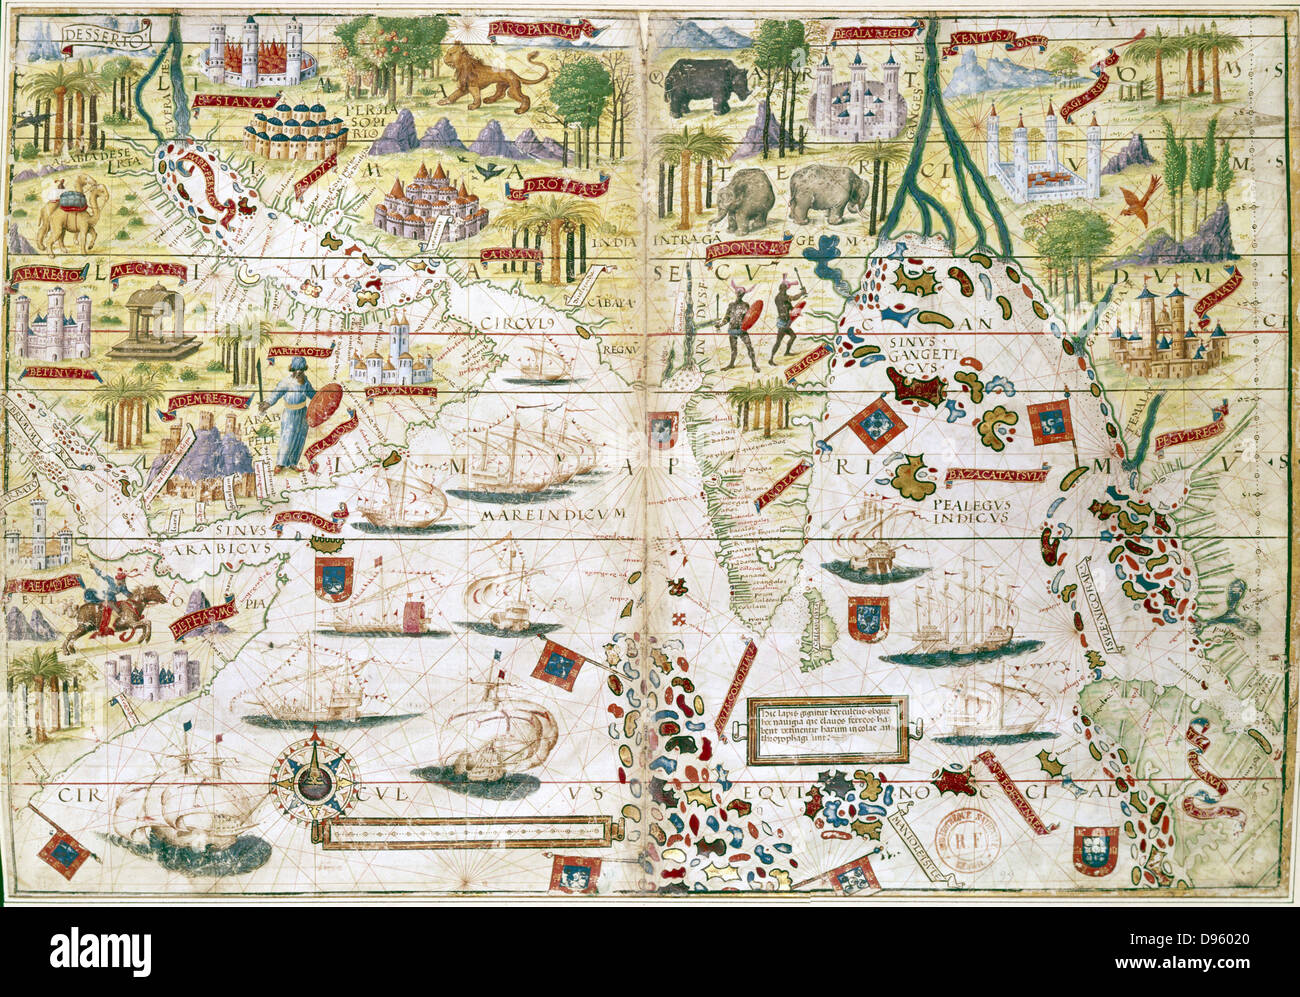 16th century Portugese map of the Indian Ocean, Persian Gulf, India ...